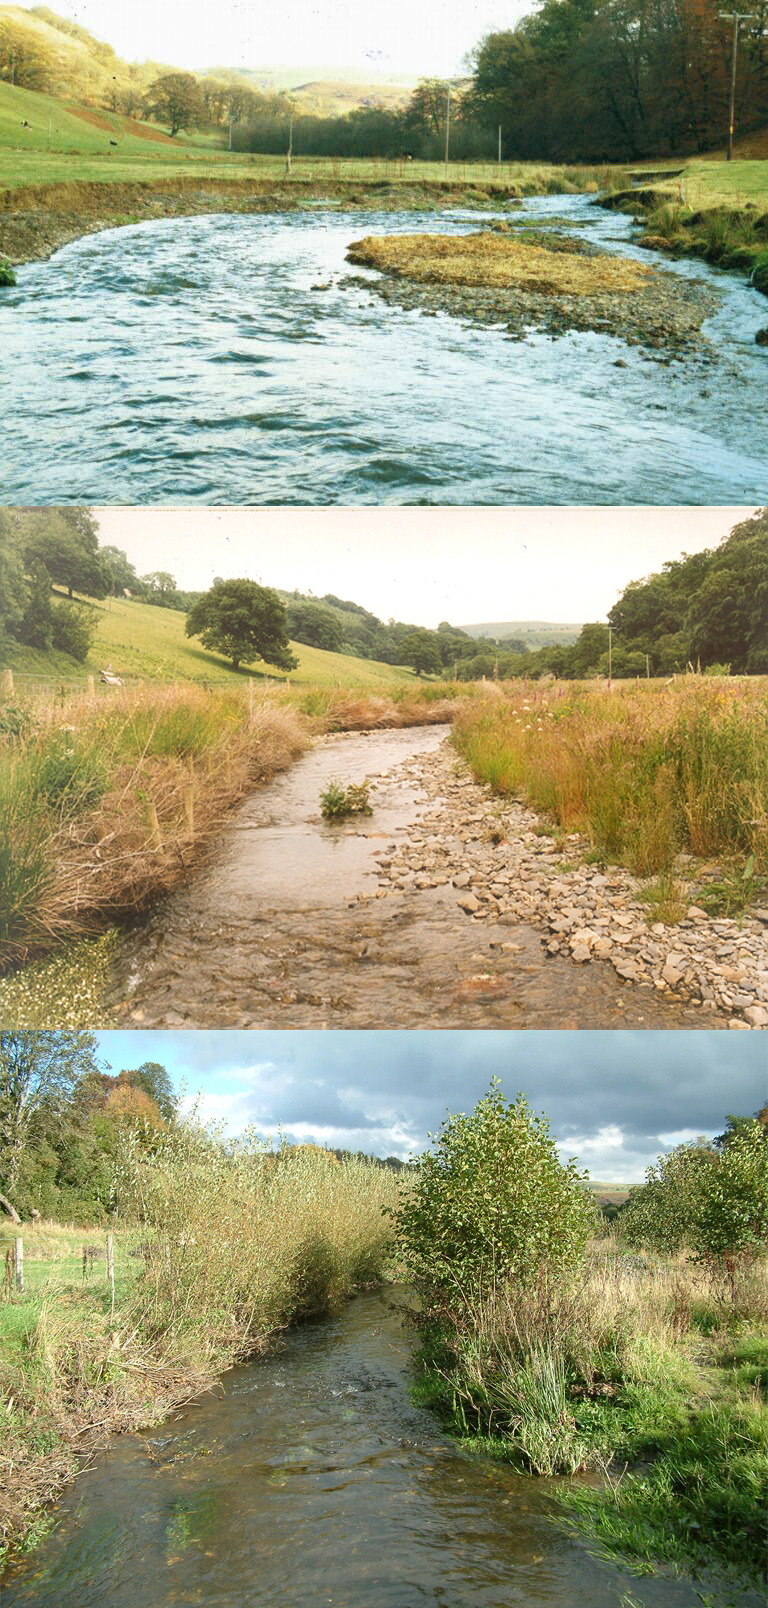 The Clywedog, a stream in the upper Wye catchment before restoration in WHIP, one and four years after work. In the lower photo the stream is fully restored and capable of supporting good numbers of juvenile salmon and trout.